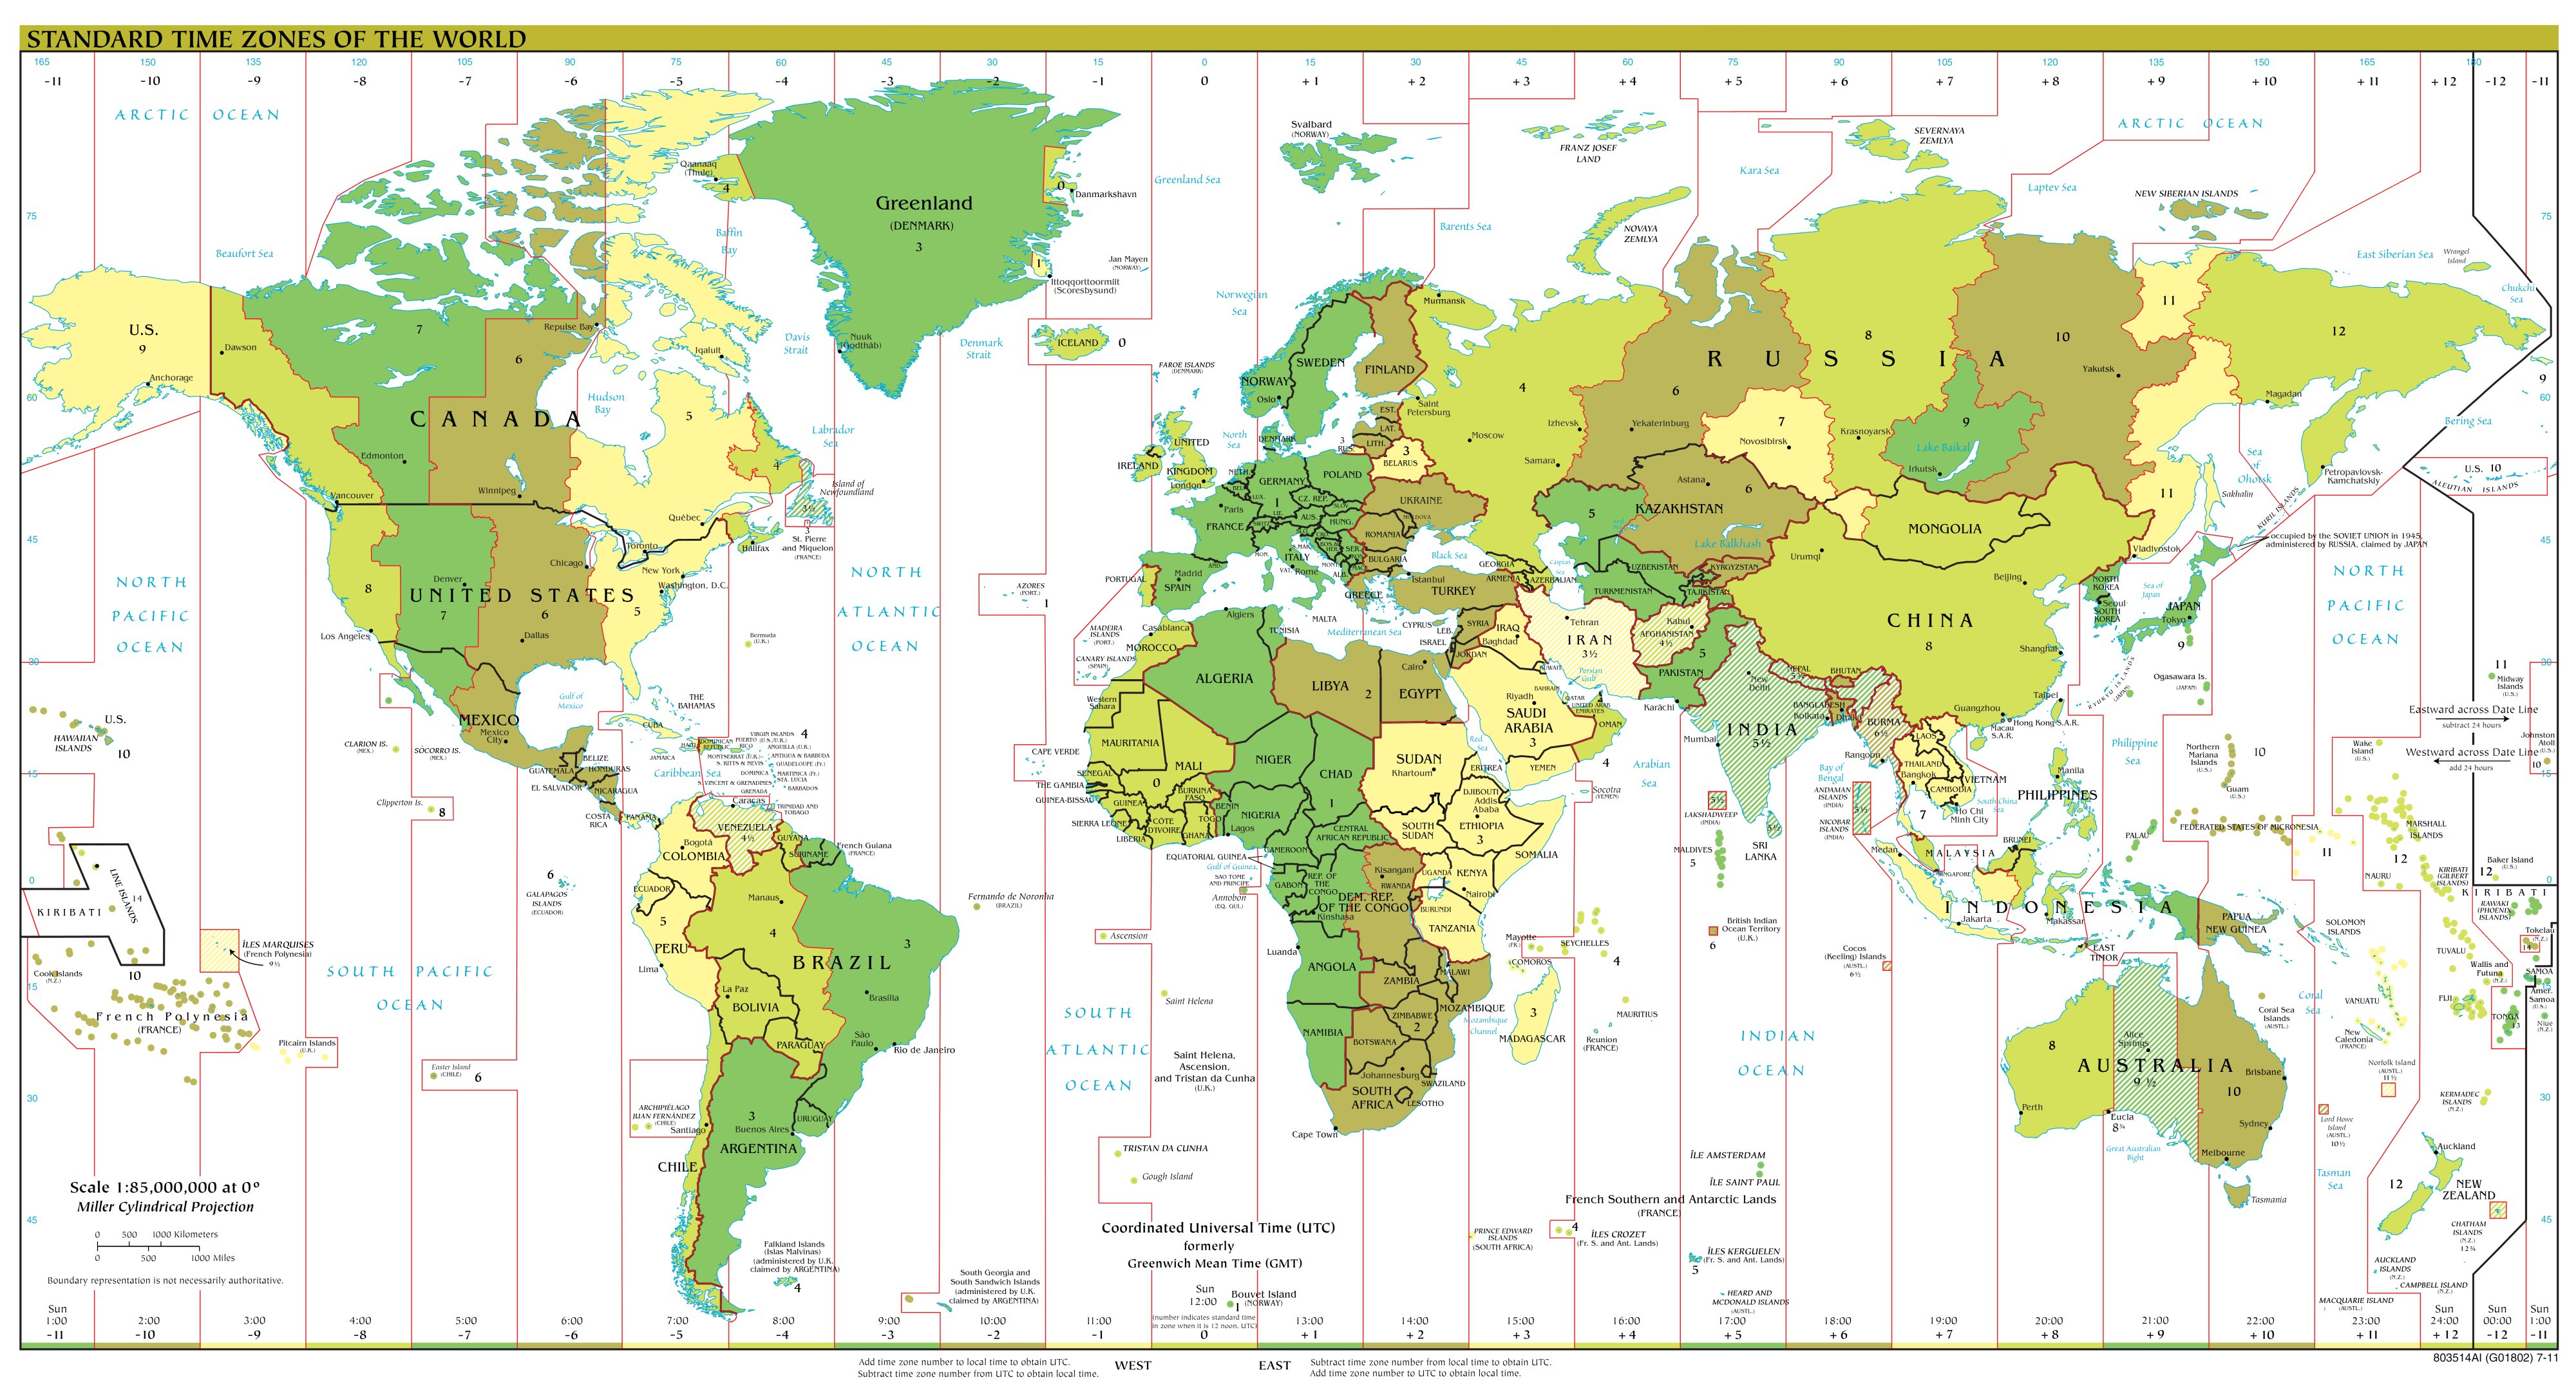 World Map (Time Zones) : Worldofmaps.net - online Maps and ...